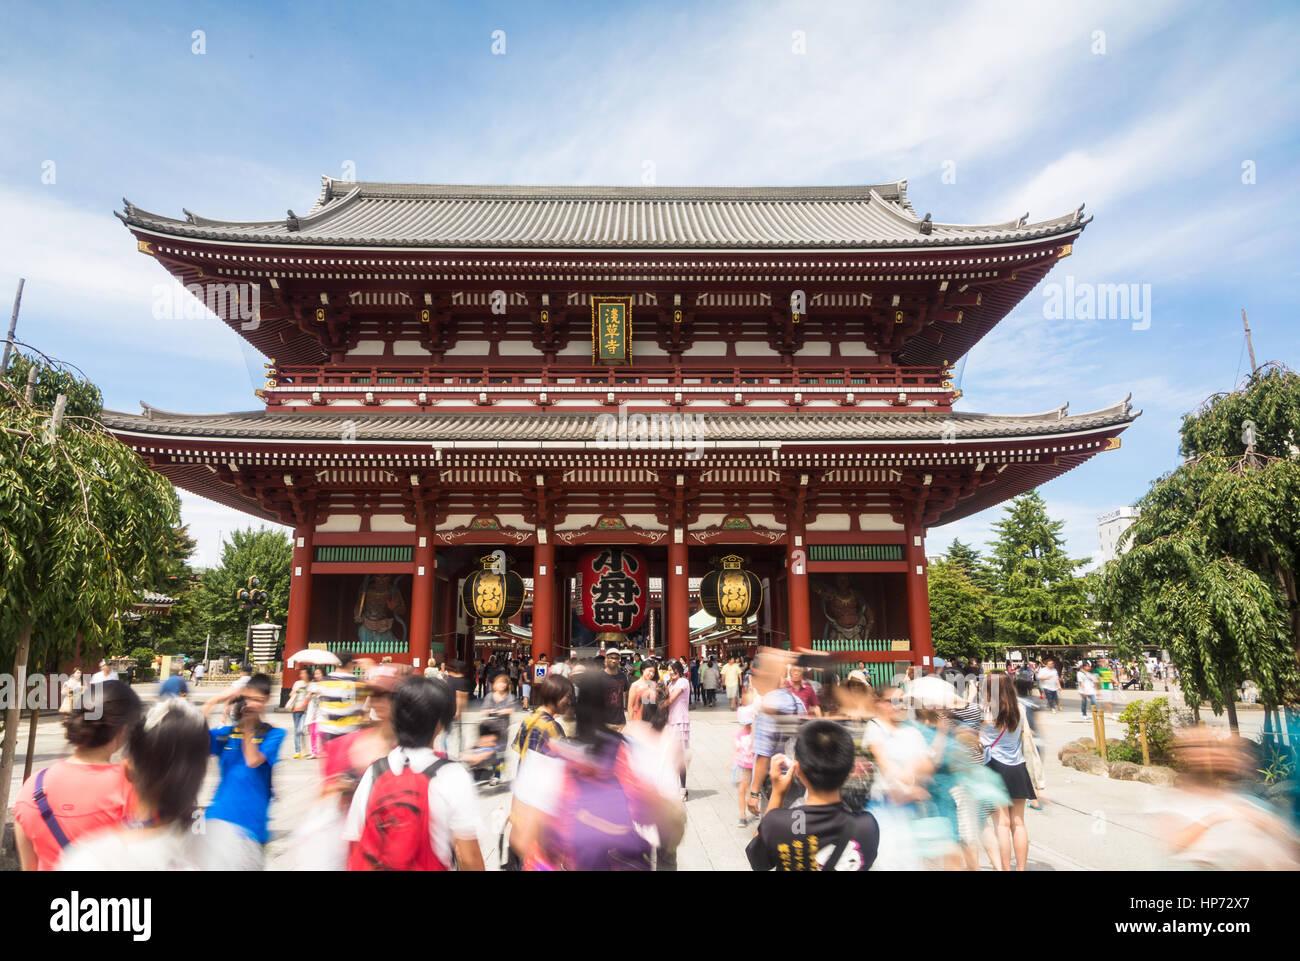 TOKYO, JAPAN - AUGUST 24, 2015: People, captured with blurred motion, visit the famous Senso-ji Buddhist temple Stock Photo